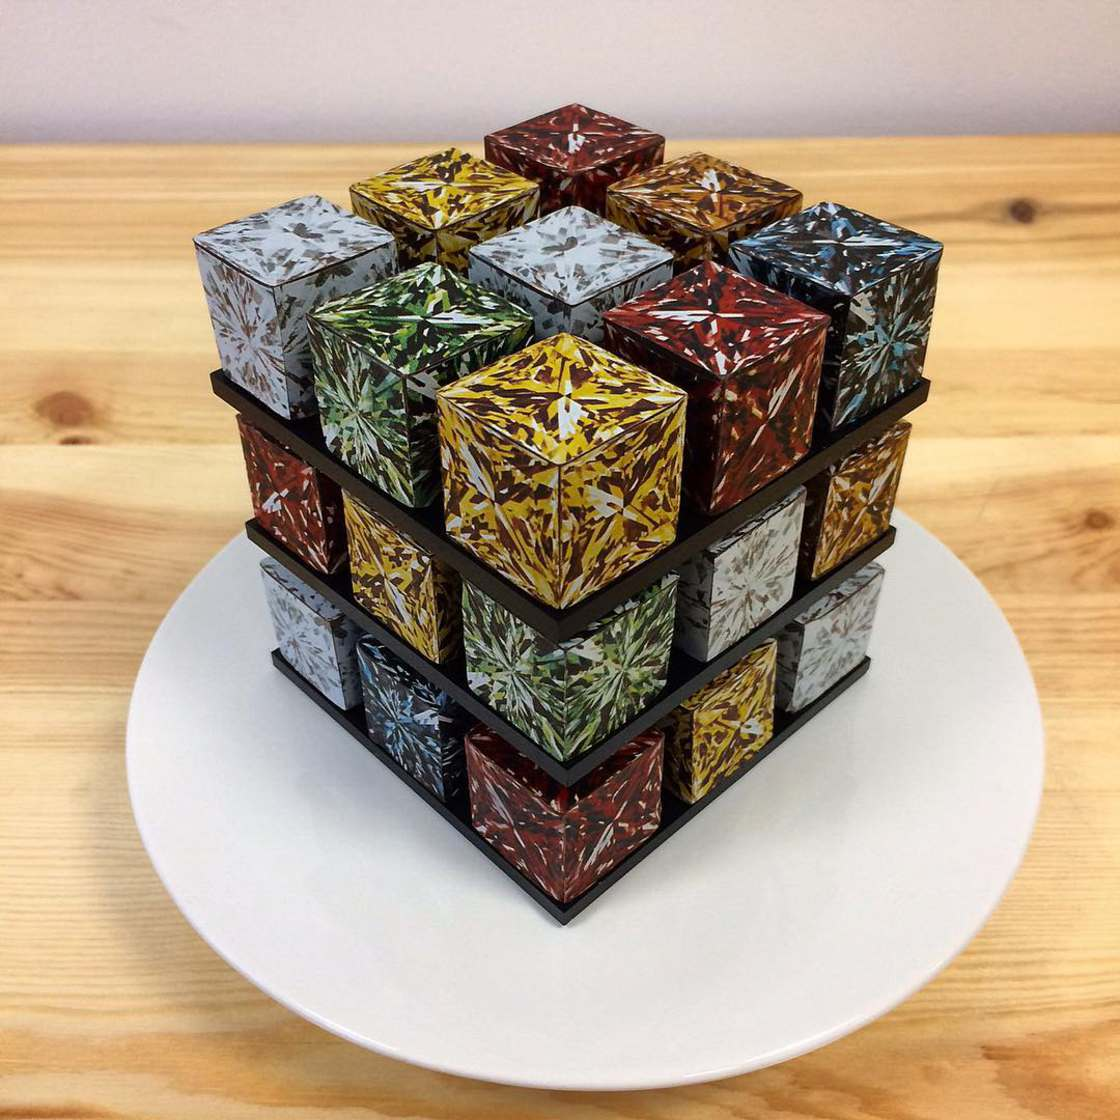 Rubik's Cake - An incredibly appetizing geometric pastry!